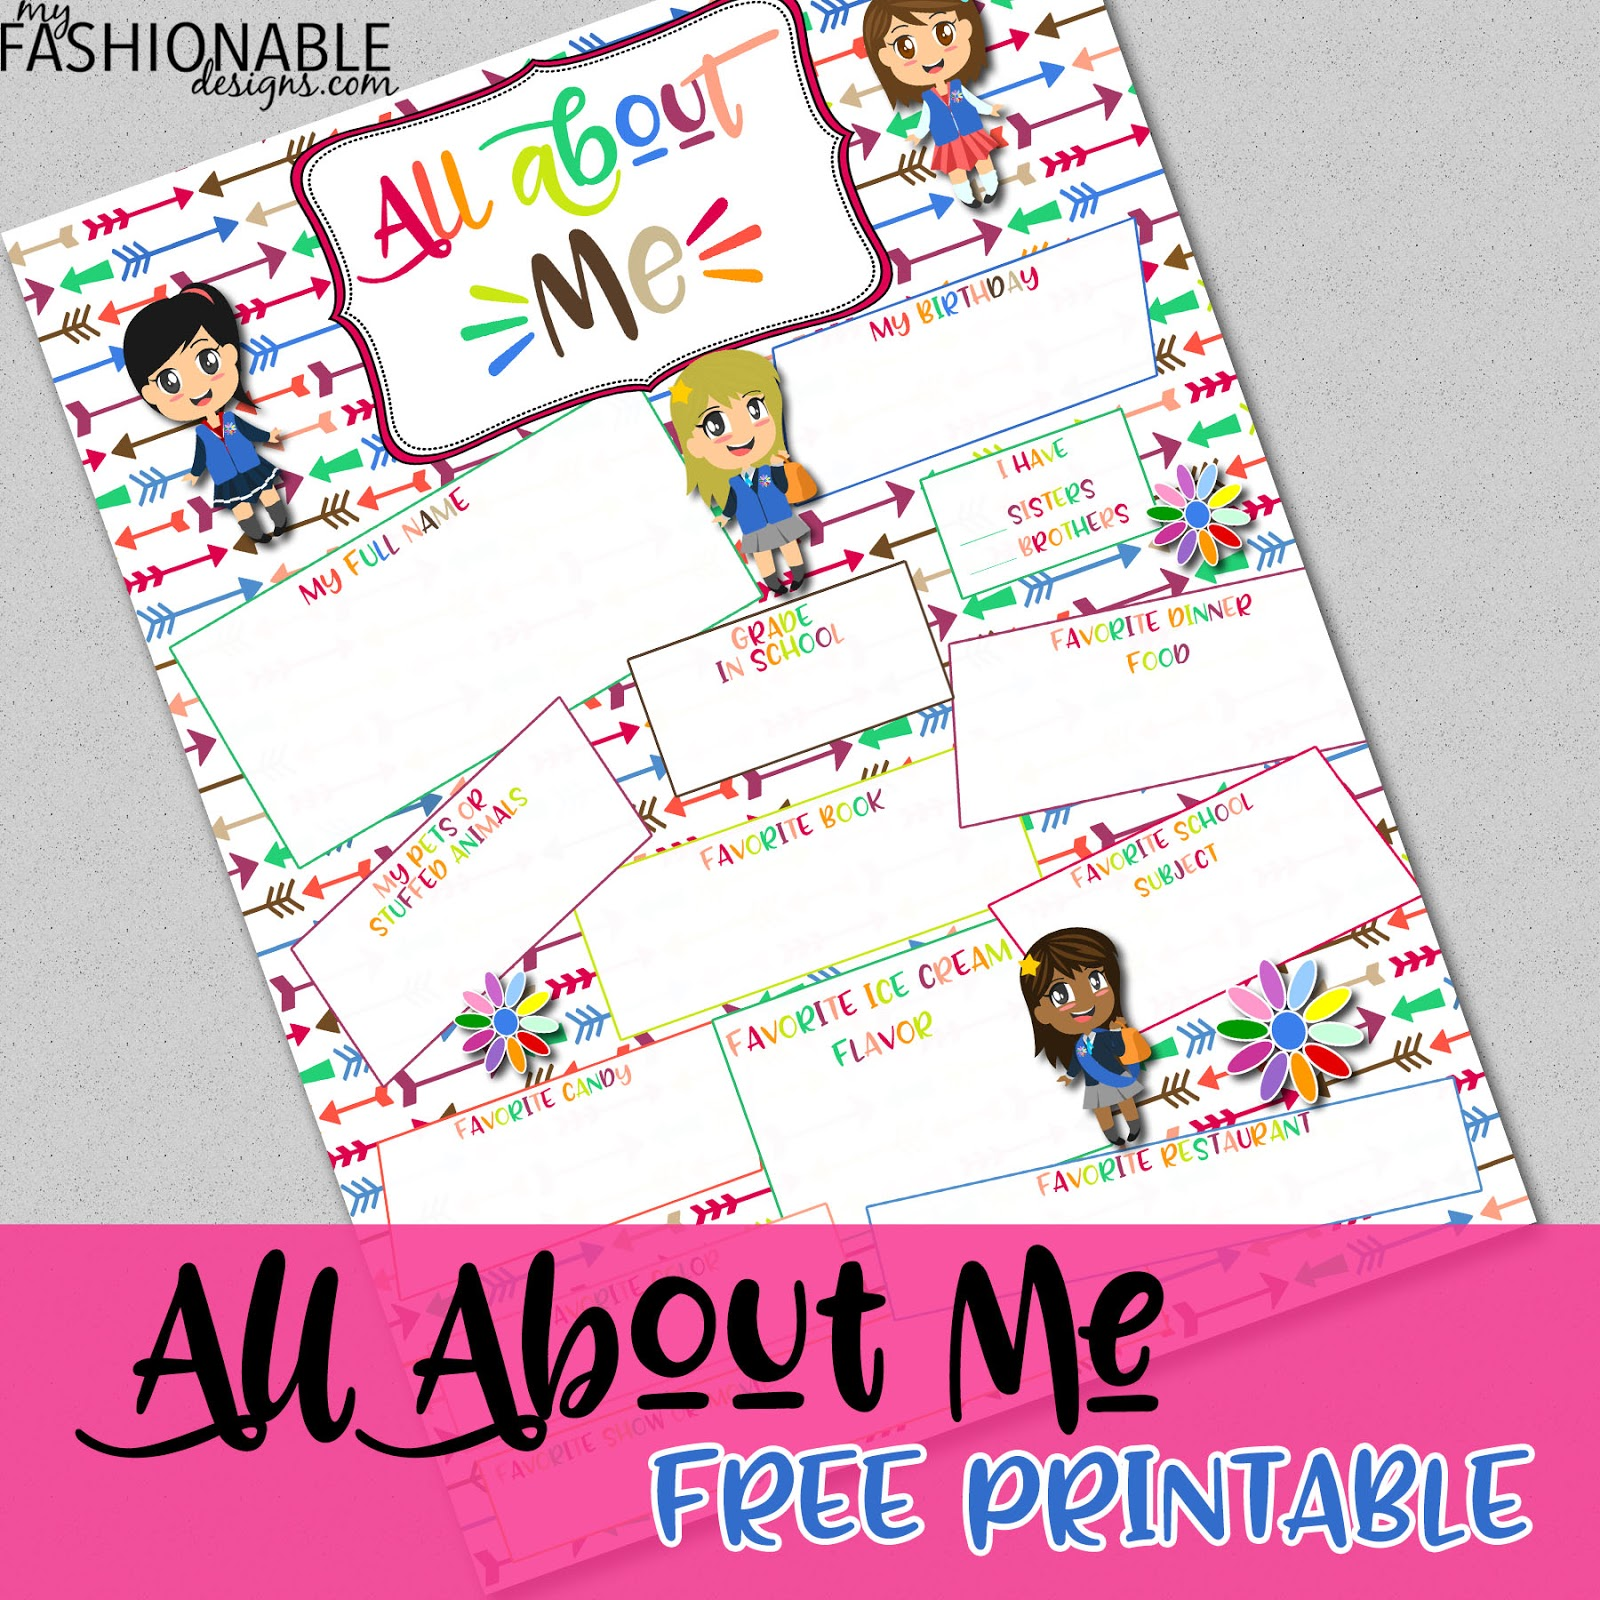 My Fashionable Designs Free Printable All About Me Page